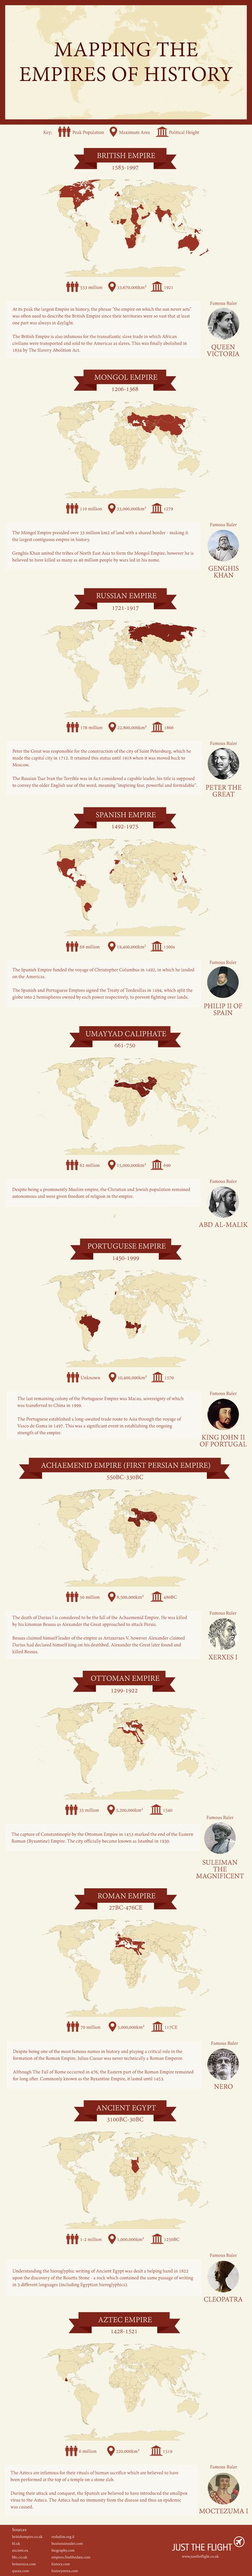 Mapping the Empires of History #Infographic #History: